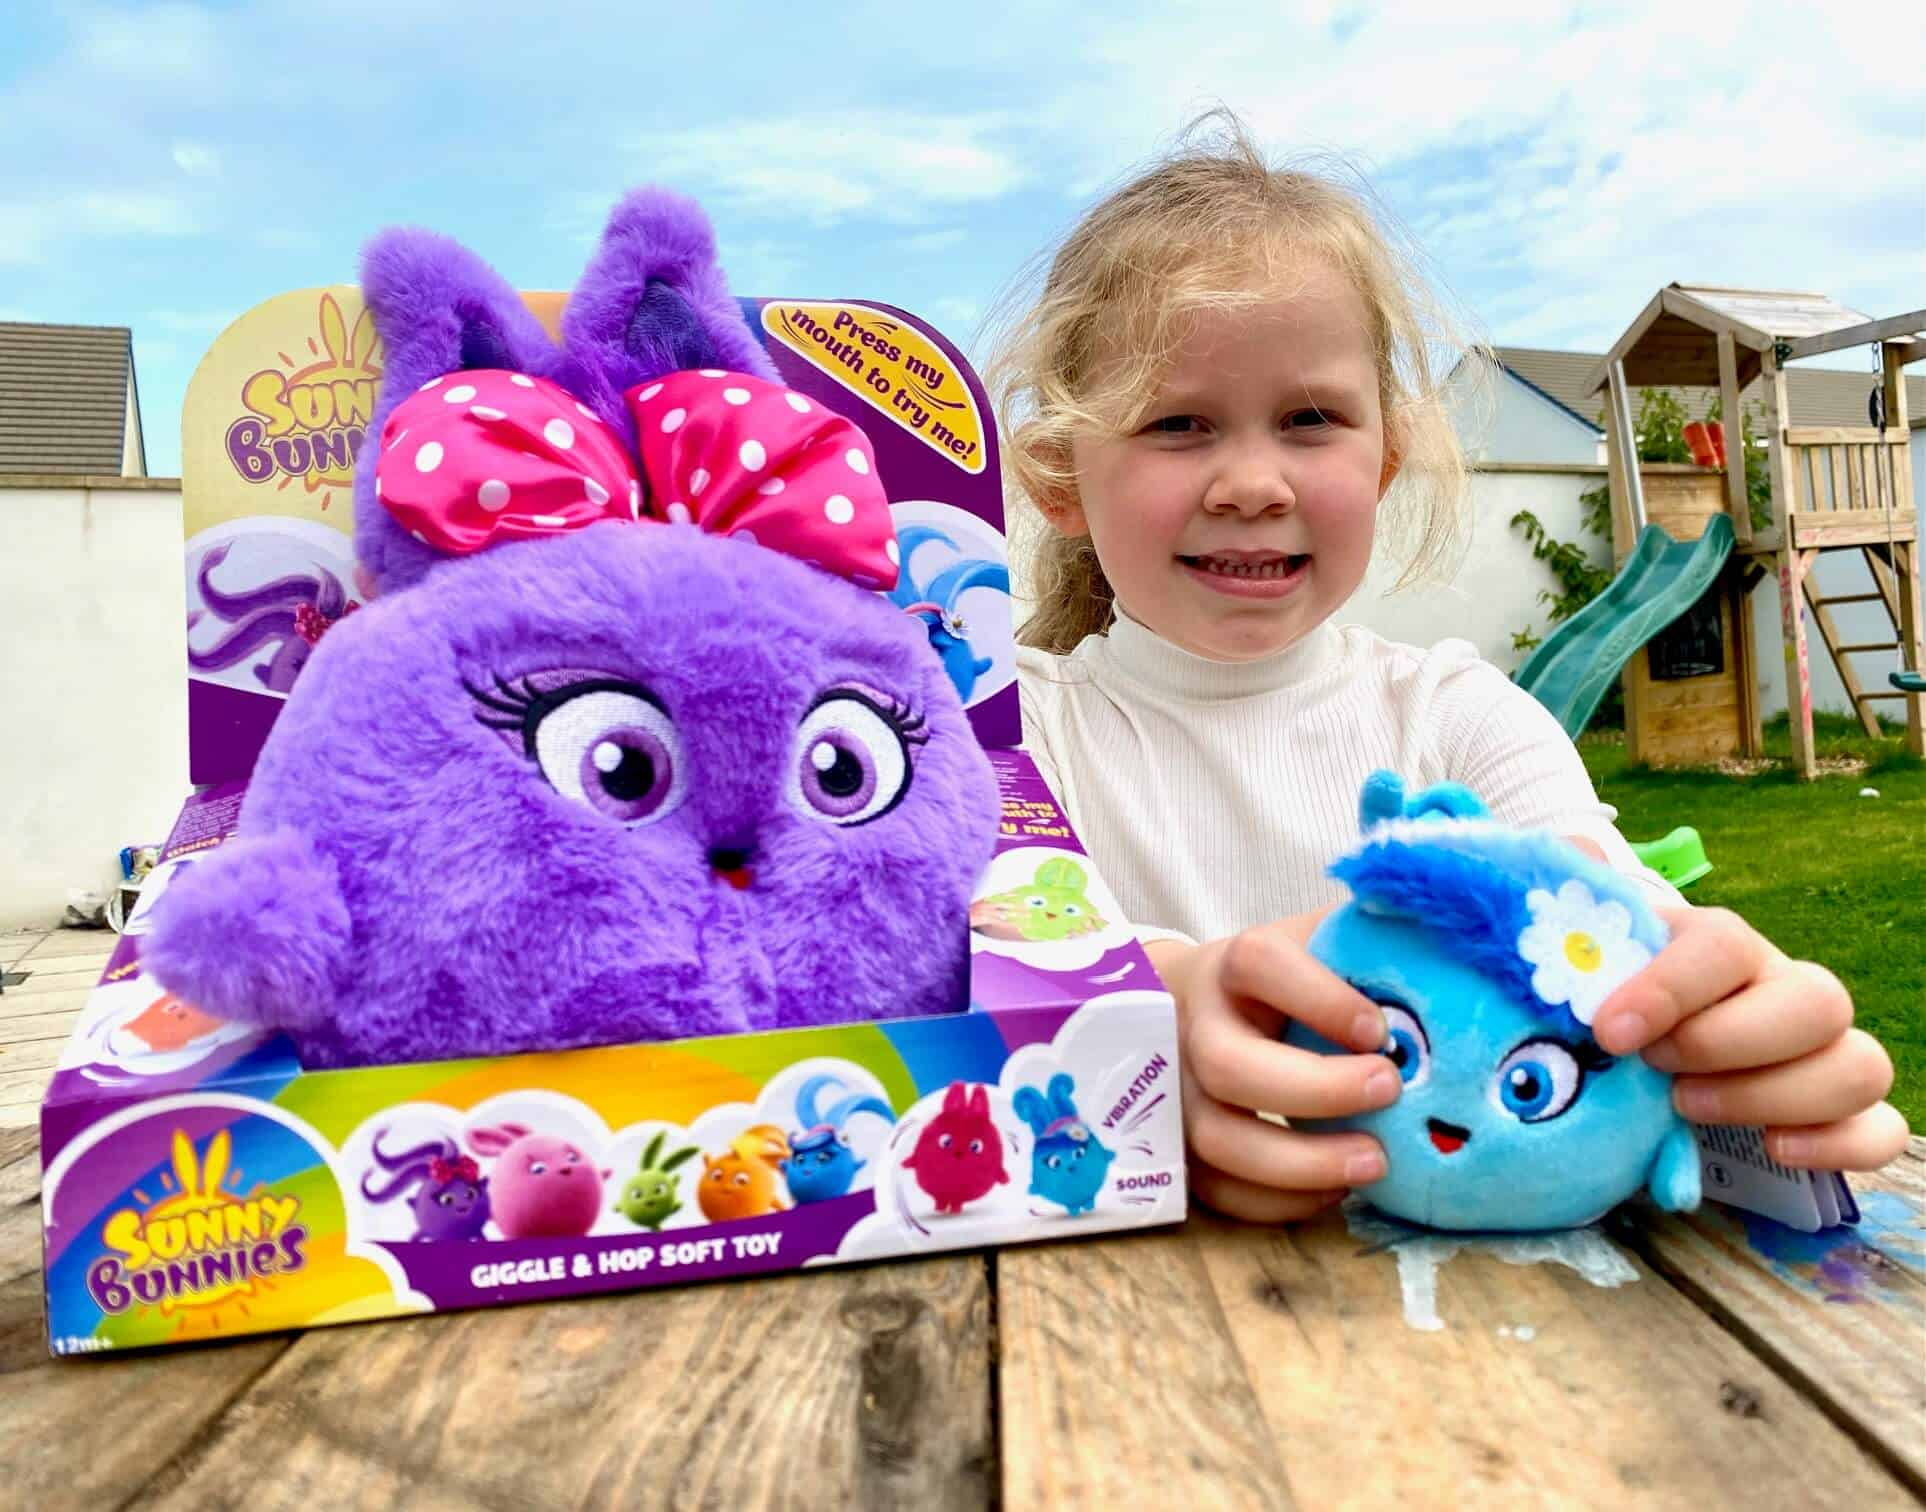 Sunny Bunnies Giggle & Hop Soft Toy Review -Iris